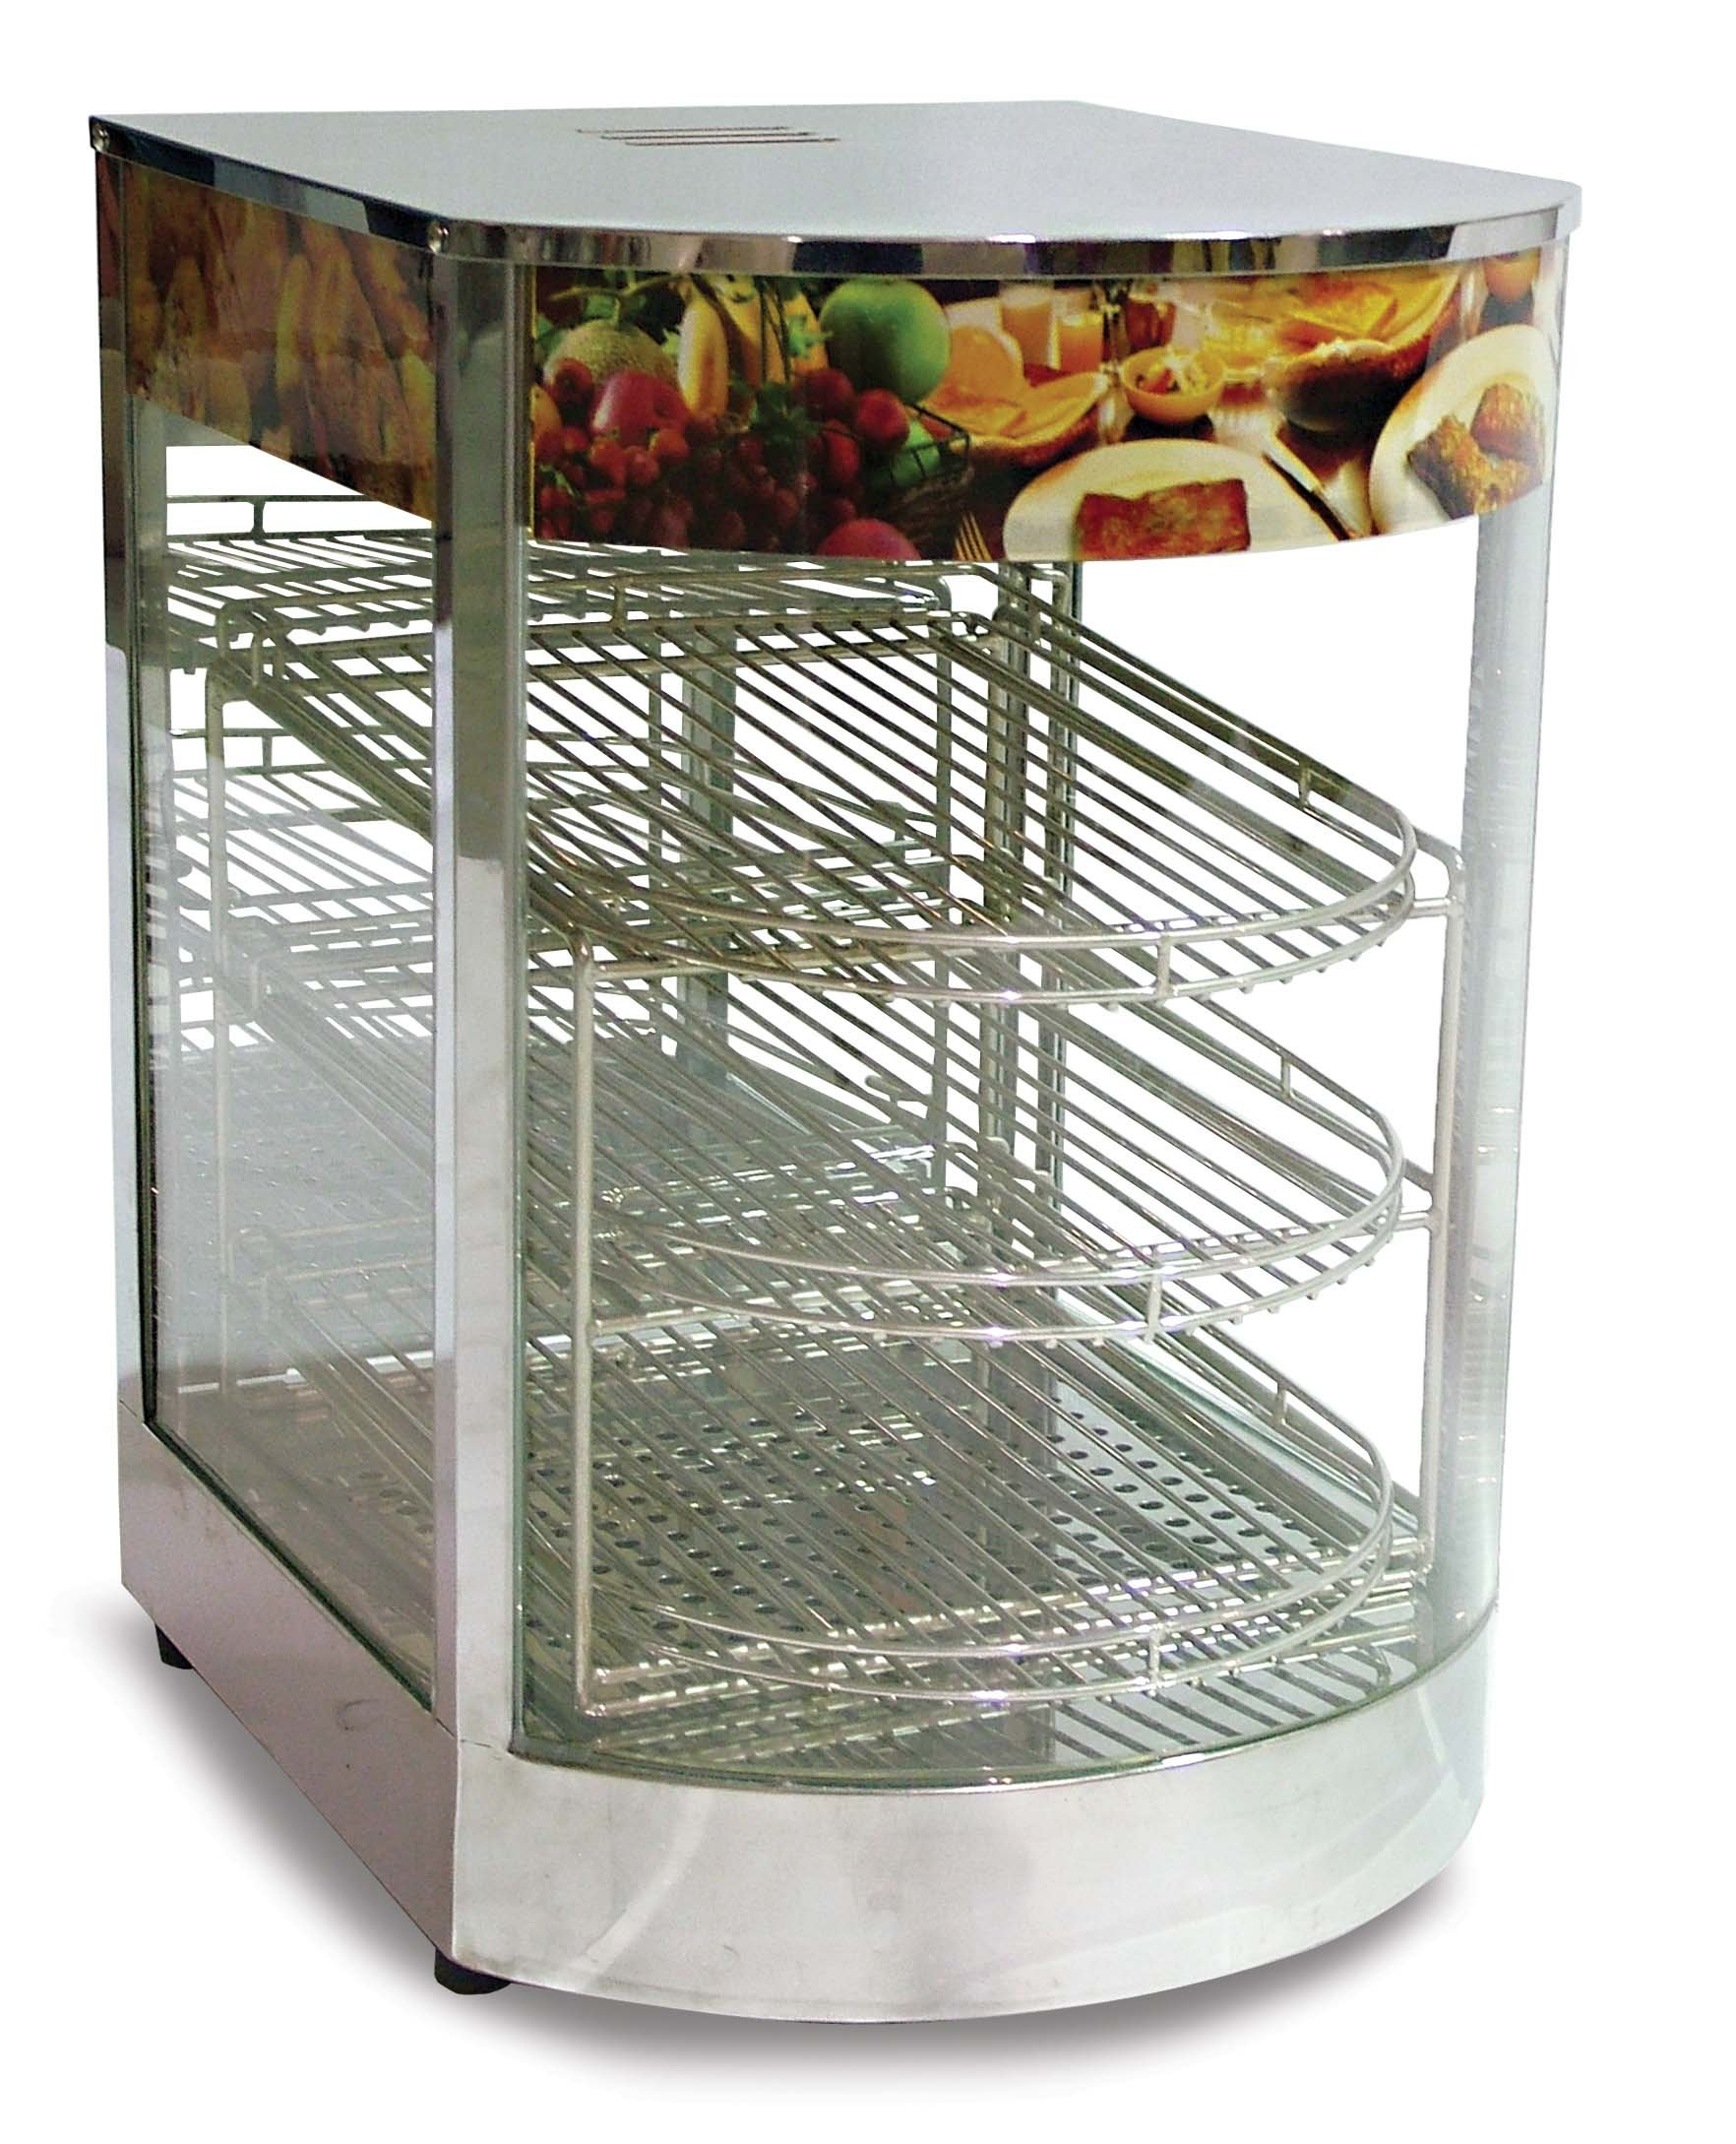 Omcan 21829 Commercial Counter Top Pizza Food Warmer Display Case 3 Shelf's